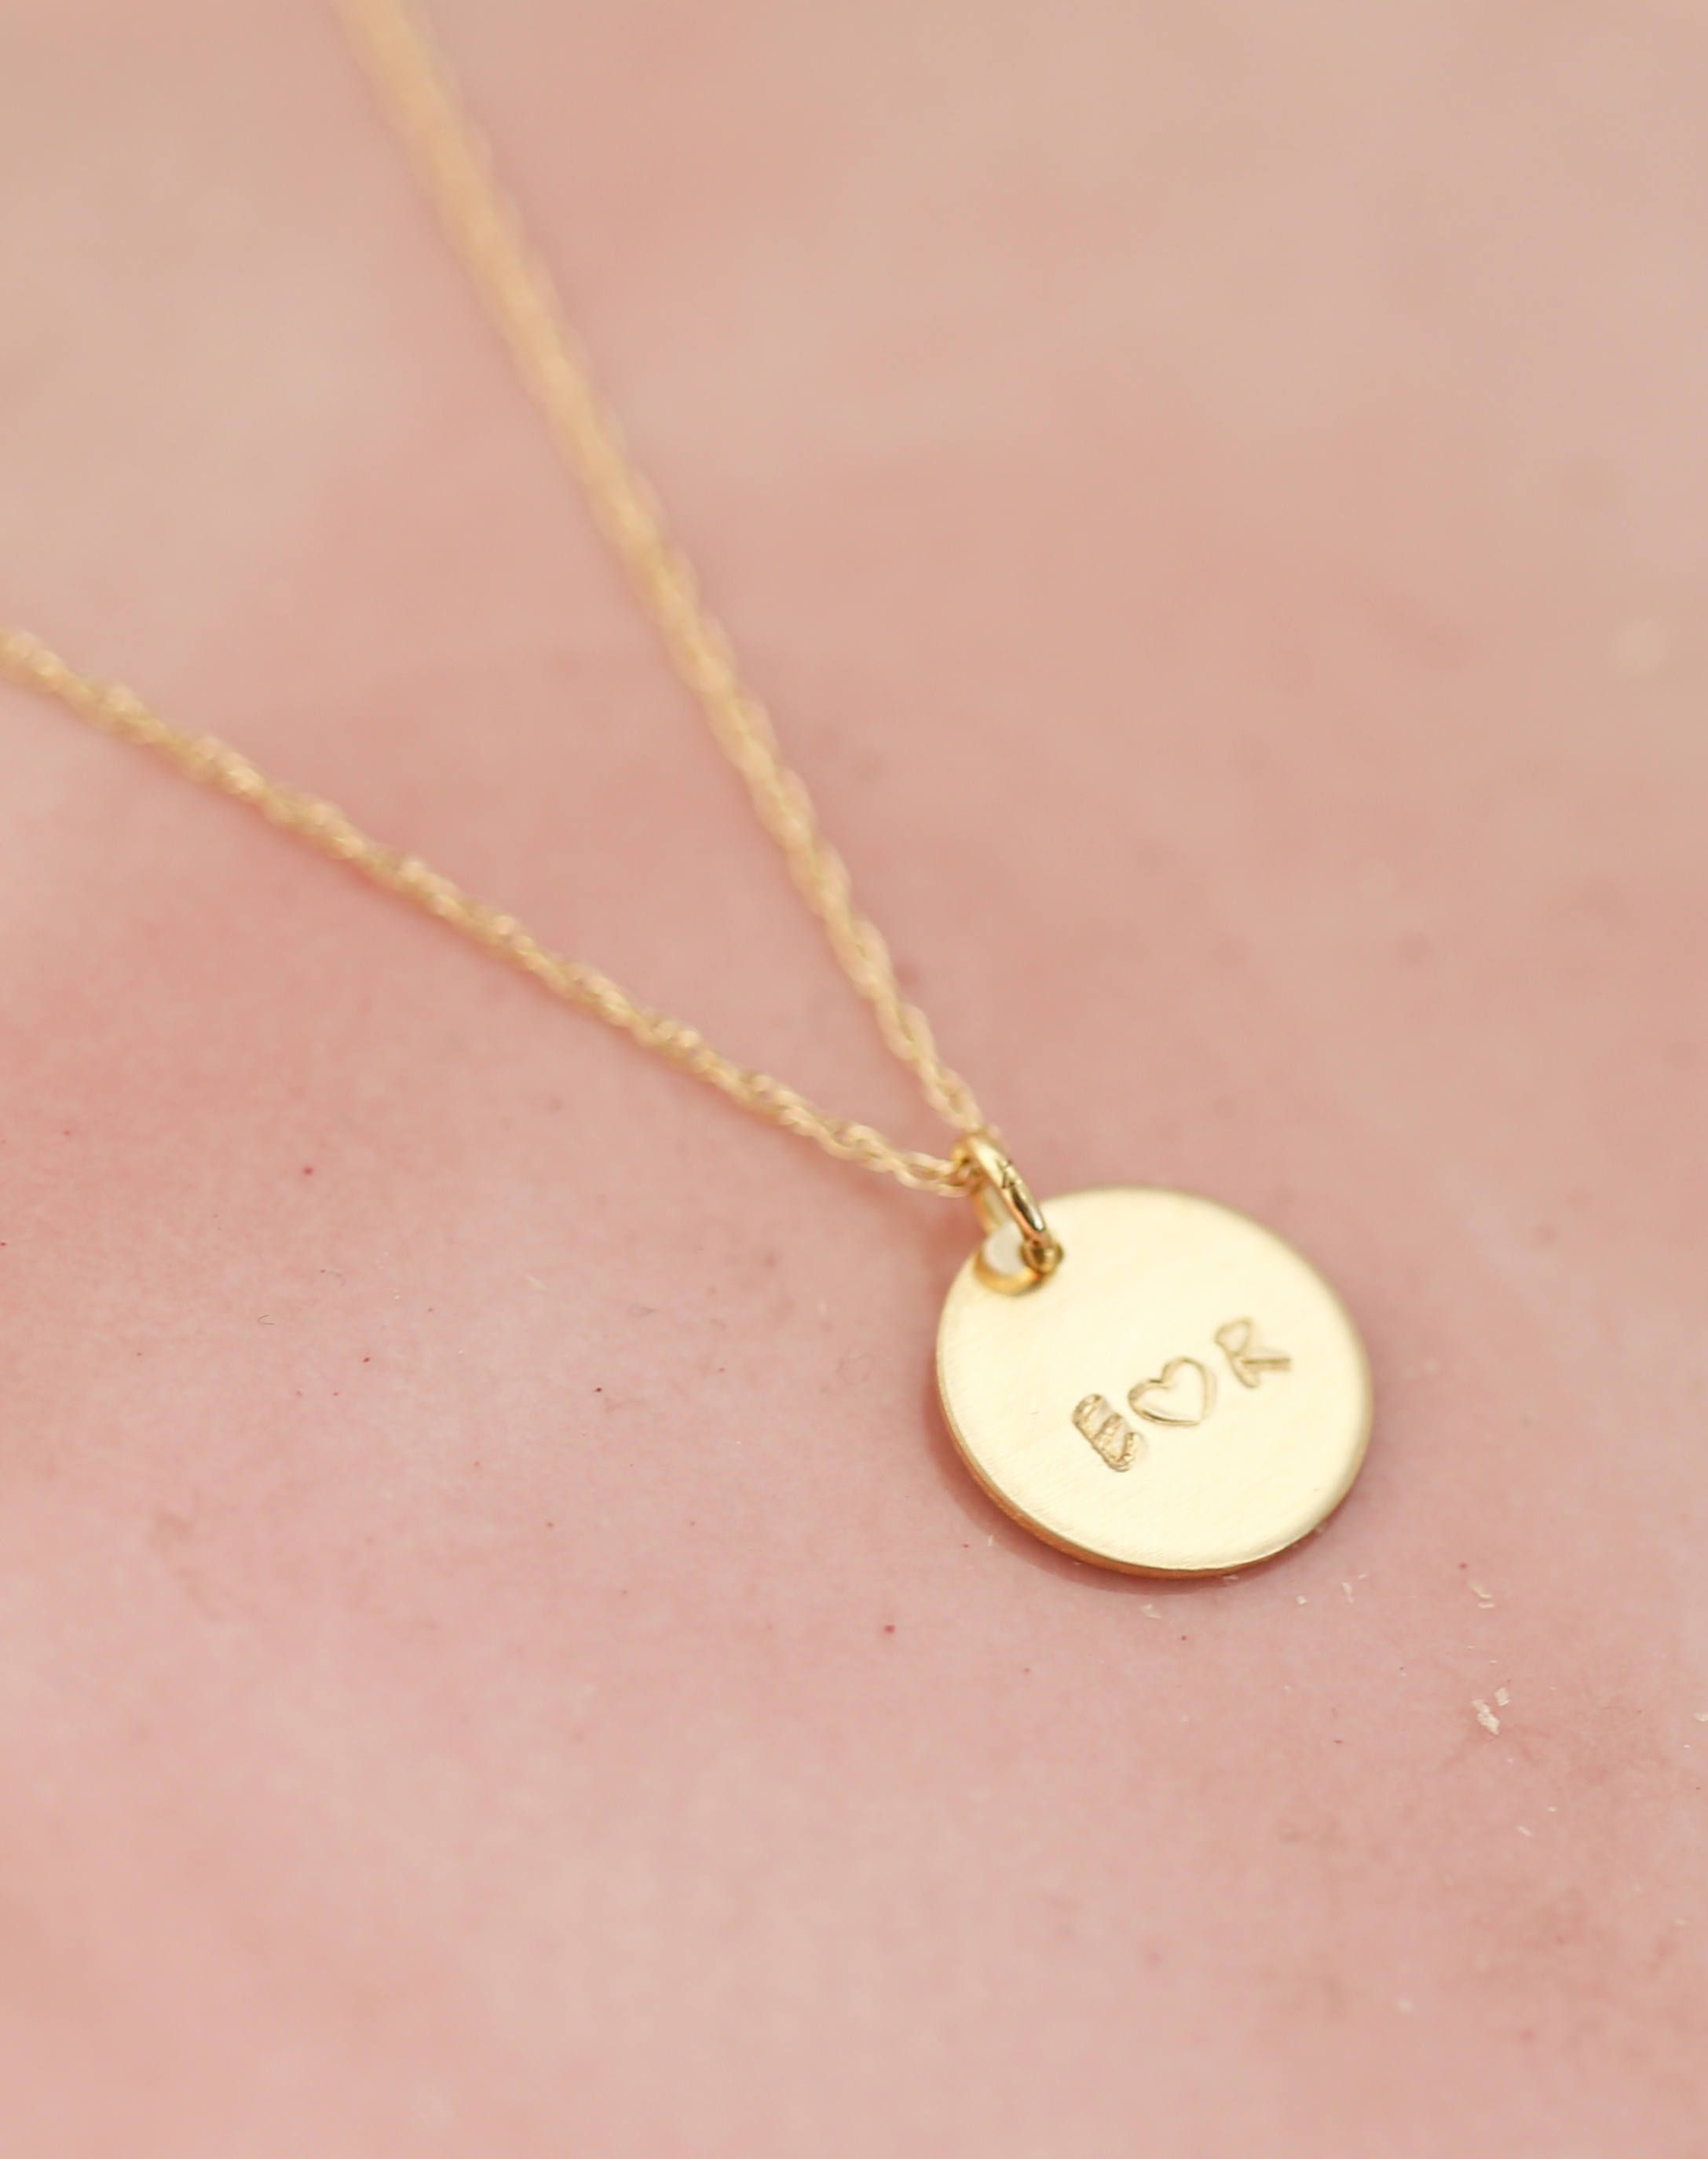 Christmas gift for her Gold Personalized Pendant Love Necklace